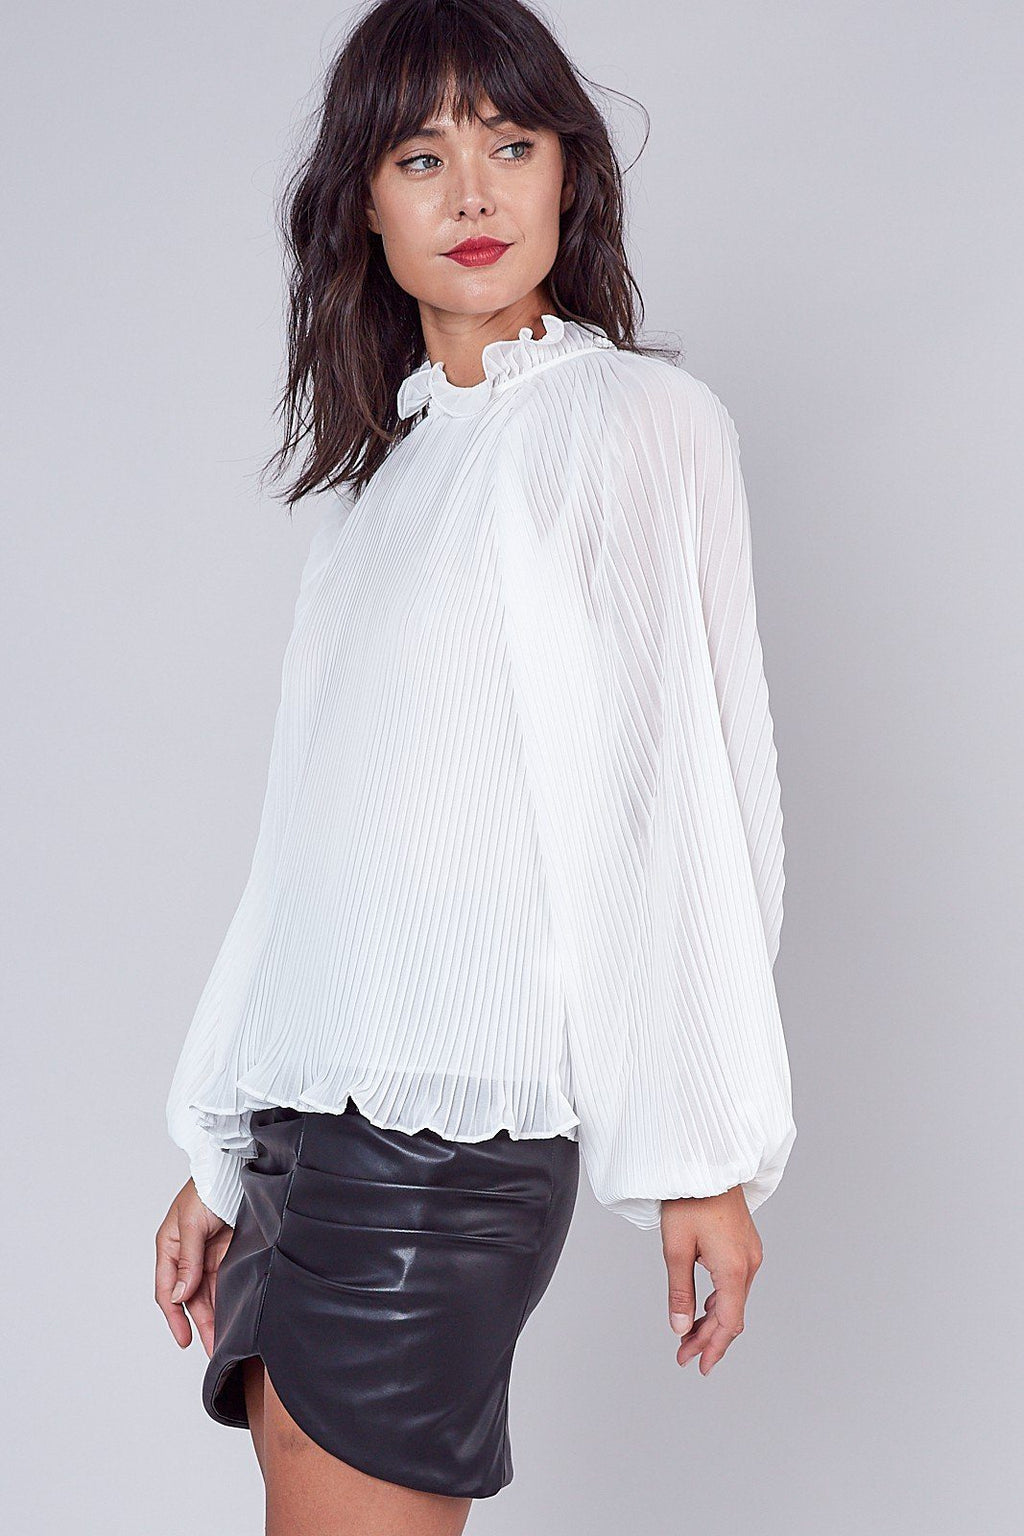 Out Of The Office White Top - Caroline Hill